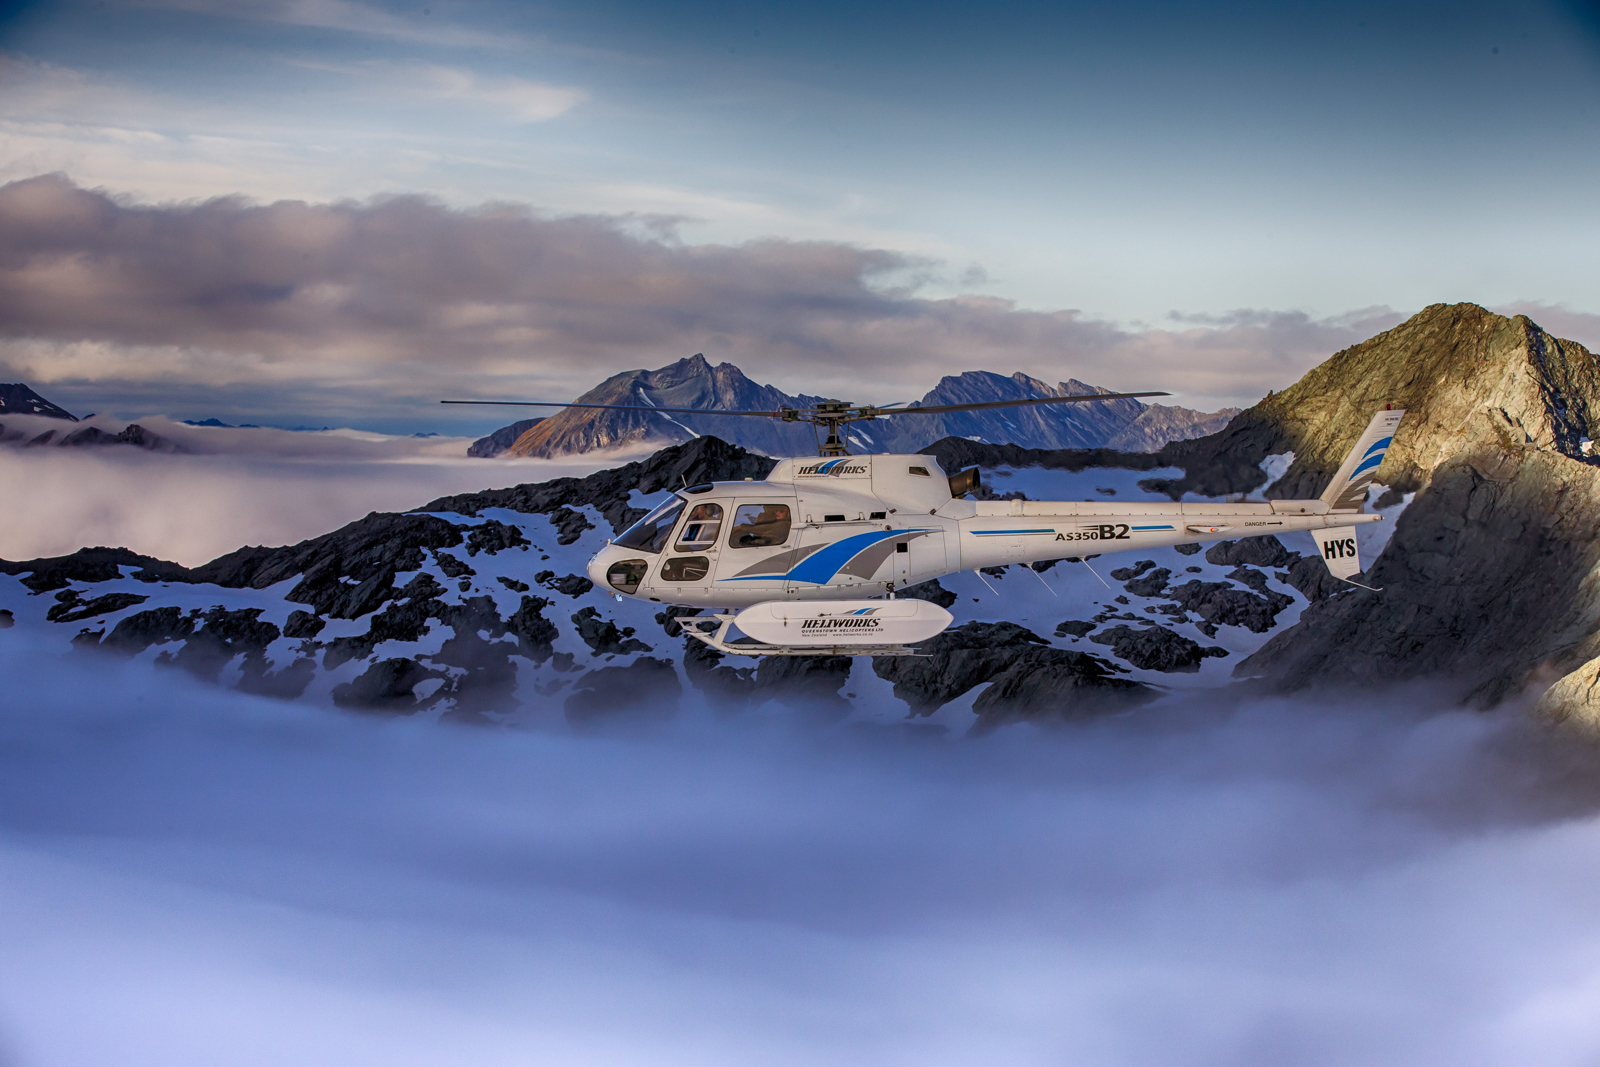 1404_NZ ANDRE_MP1_8196-2_HDR-1.jpg